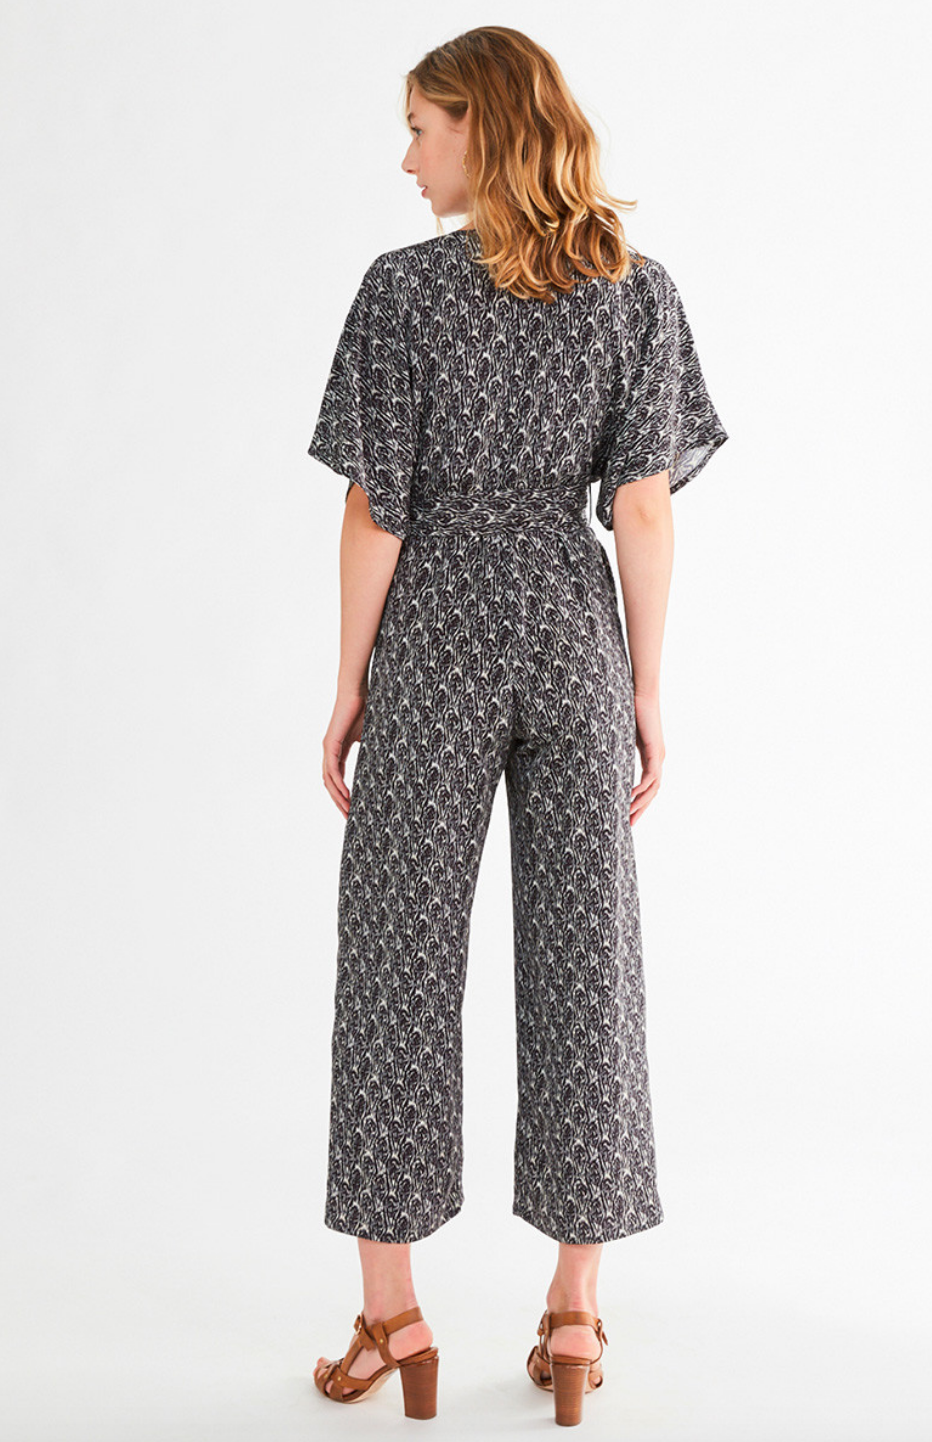 vanessa Bruno Vanessa Bruno V-Neck Short Sleeve Jumpsuit with Self Tie Waist